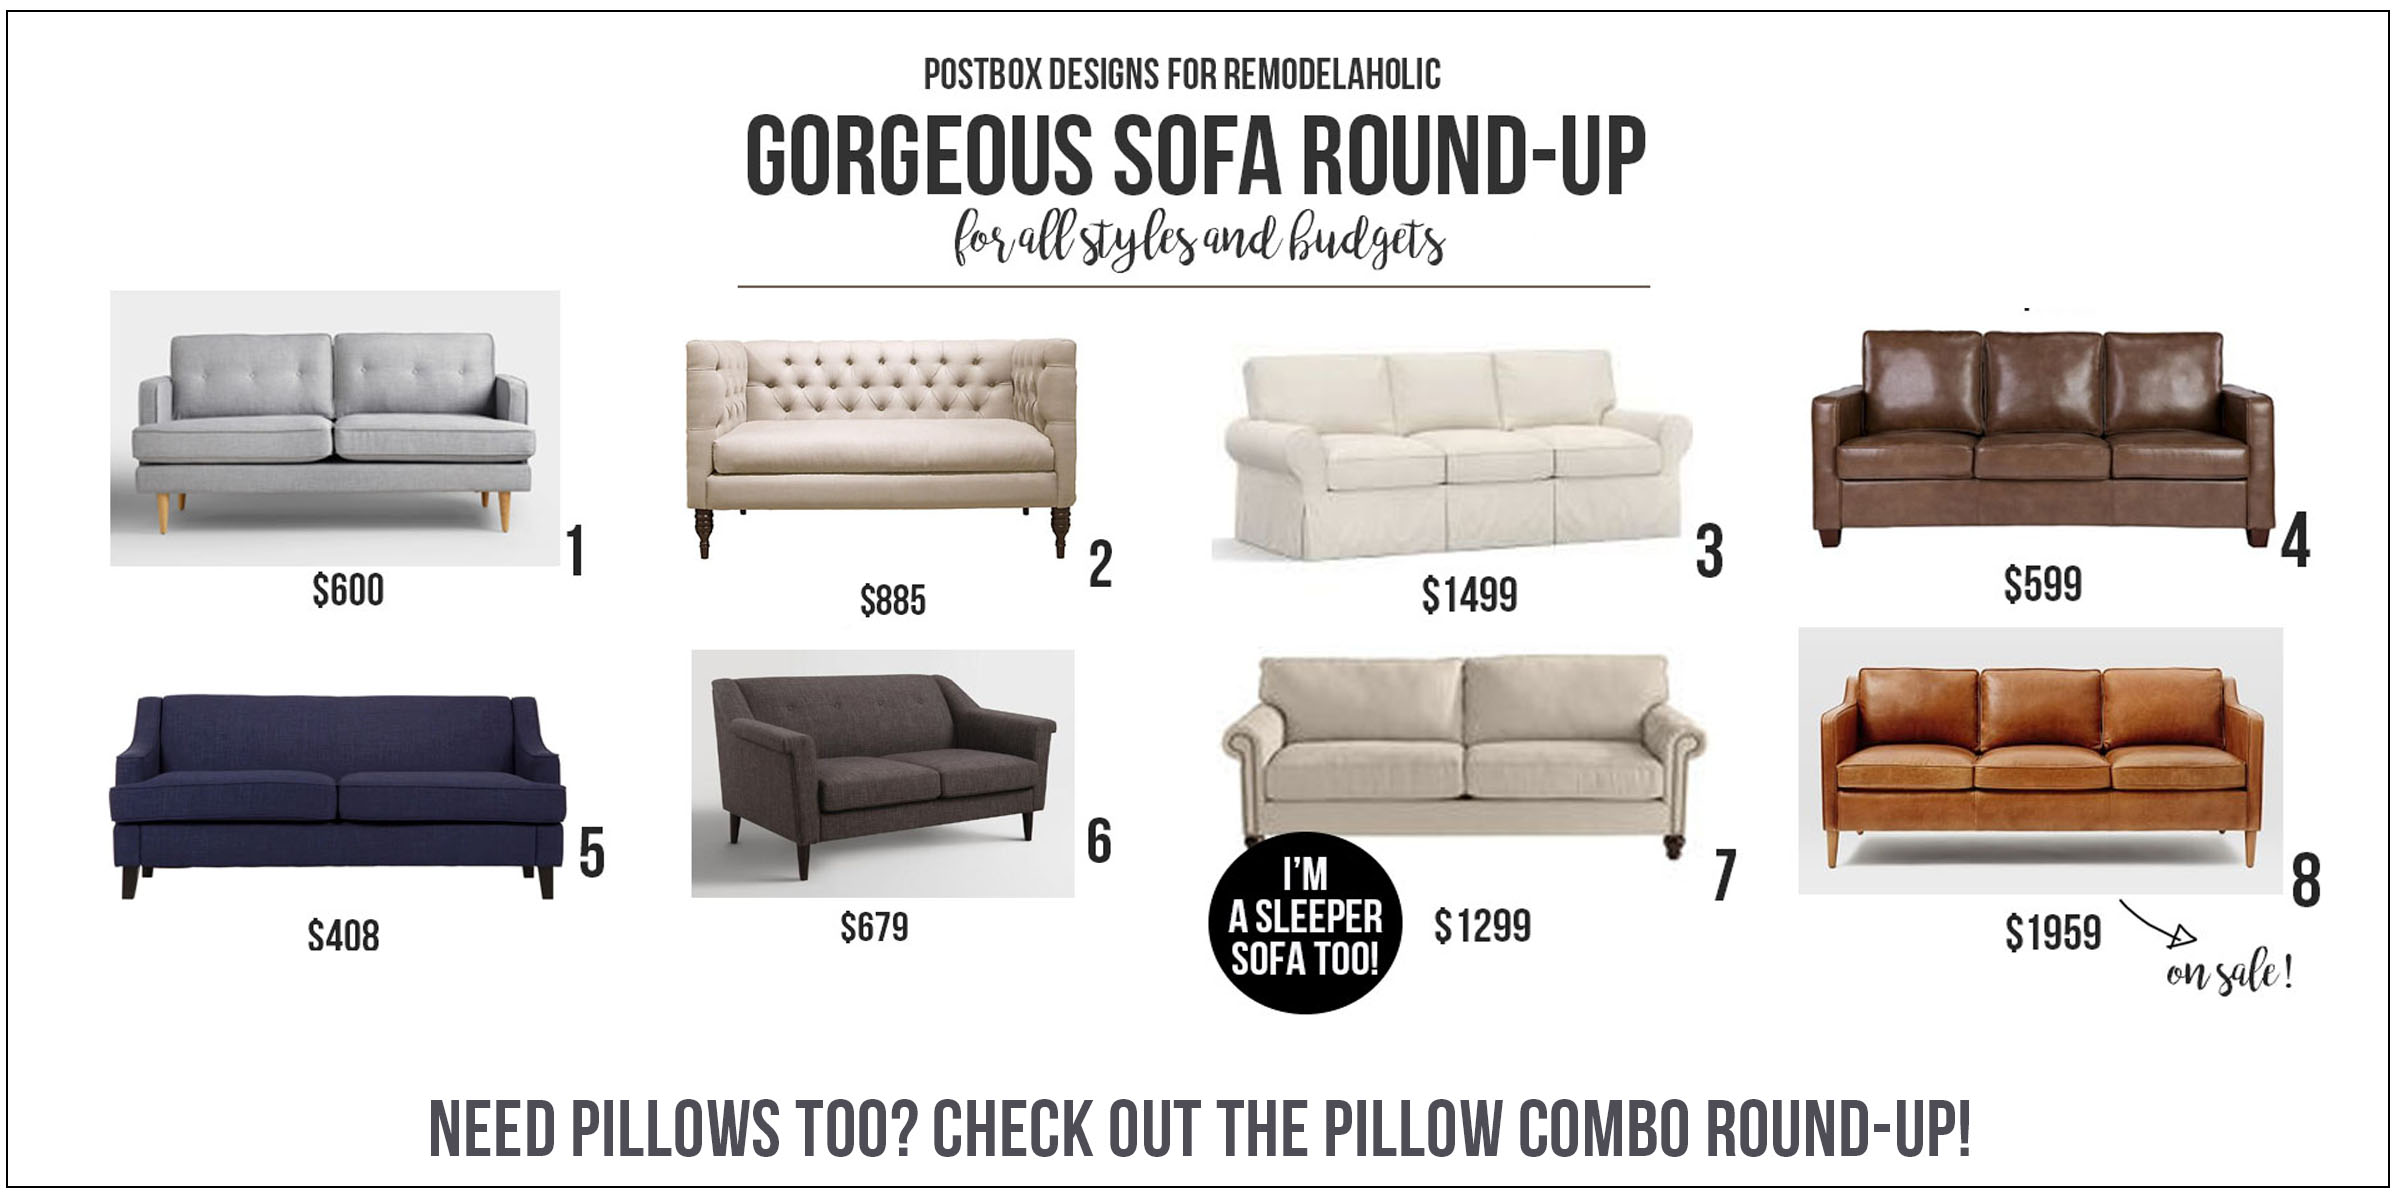 Sofa Round Up by Postbox Designs E-Design